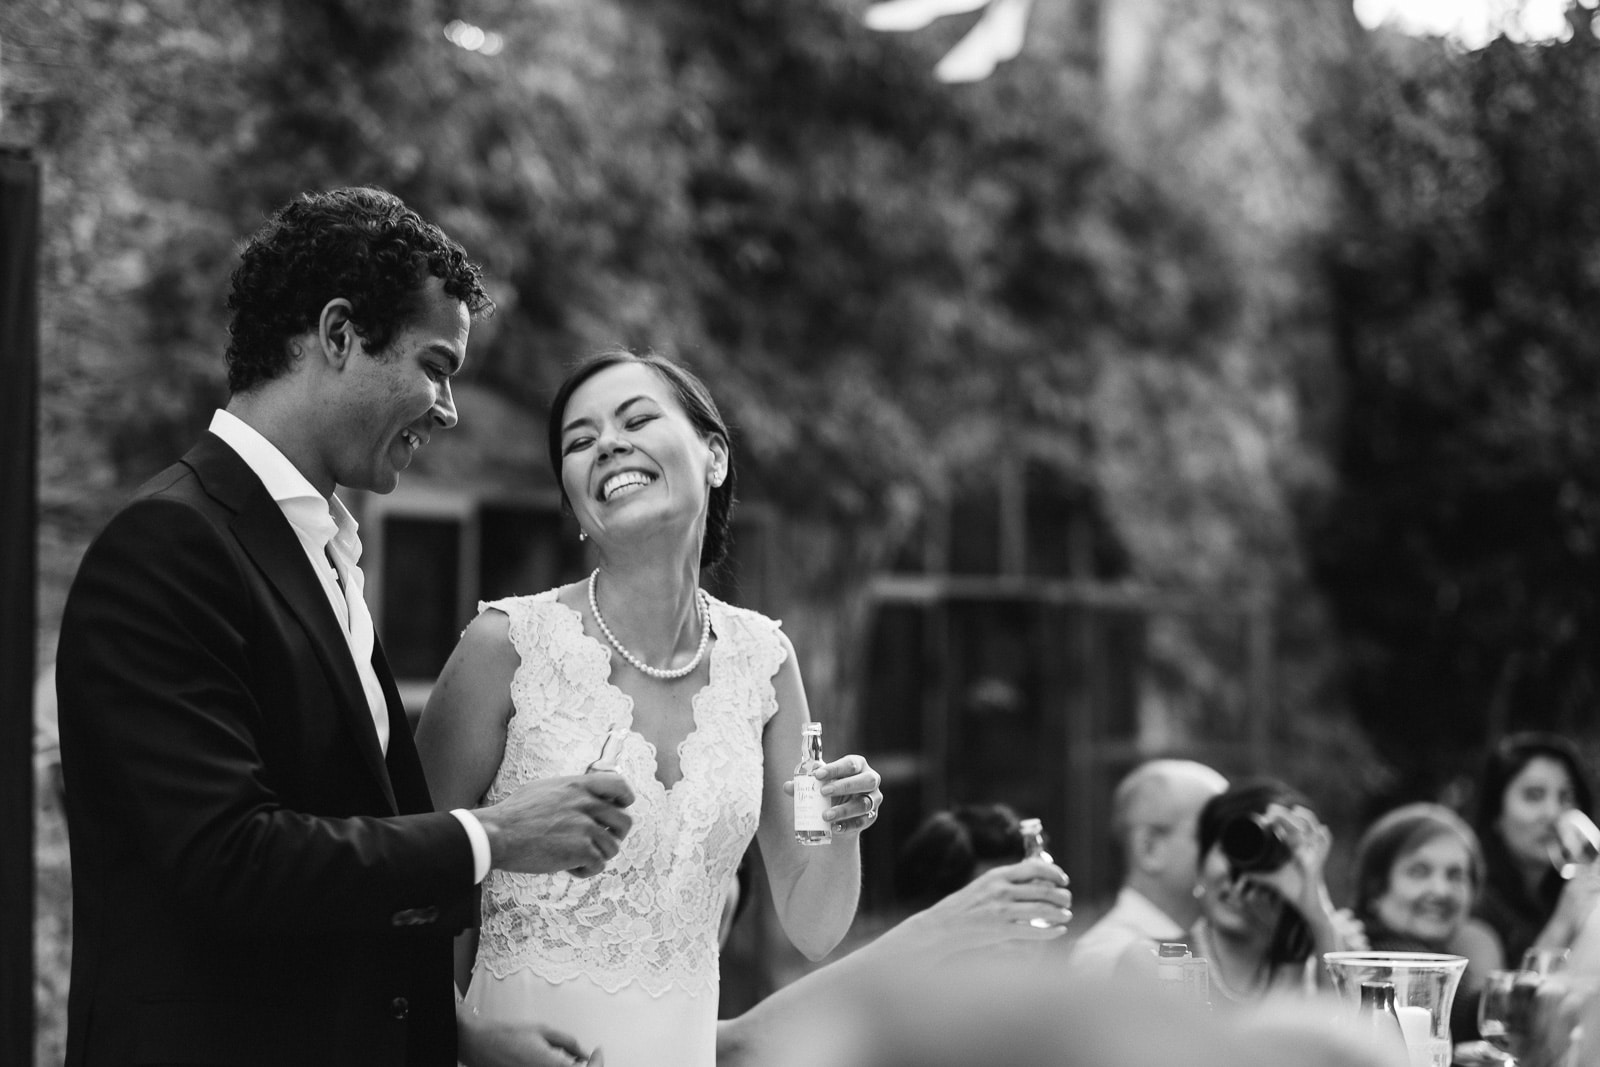 Tuscany chianti wedding photographer Luca Tibberio